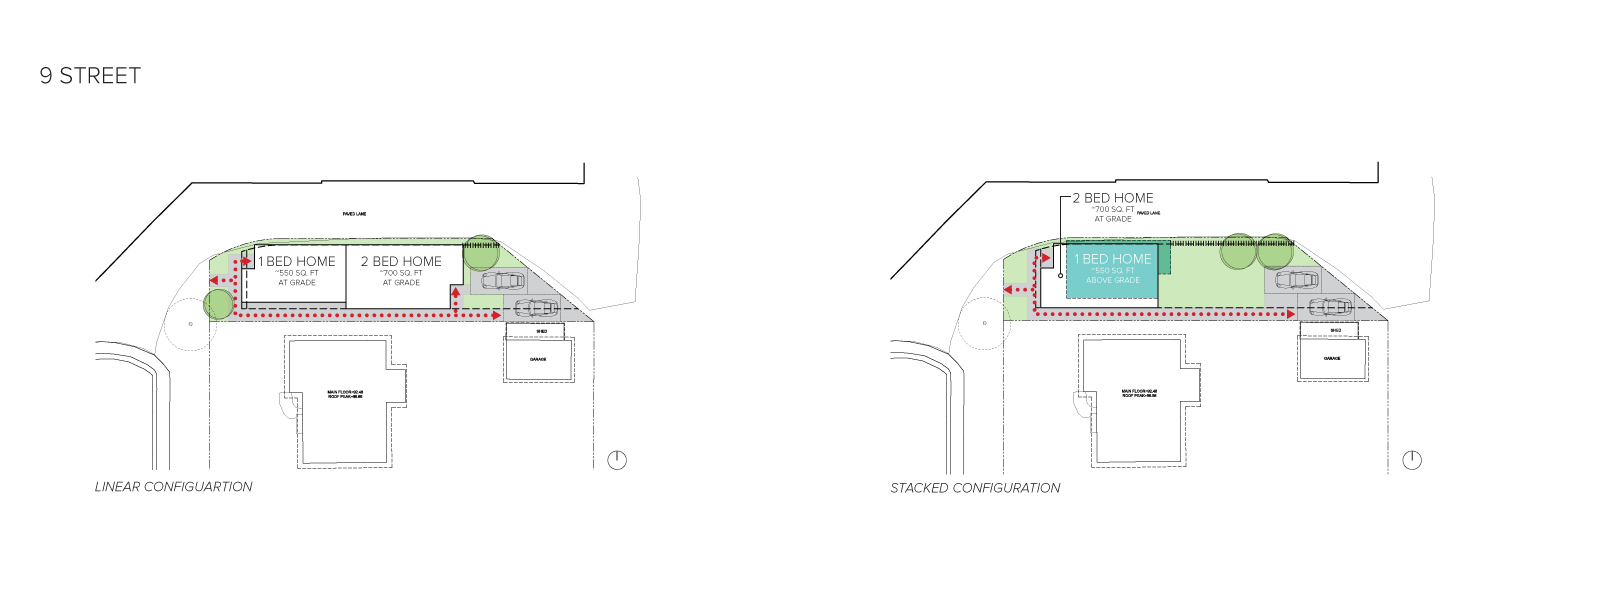 An image of the home configurations on 9 Street.